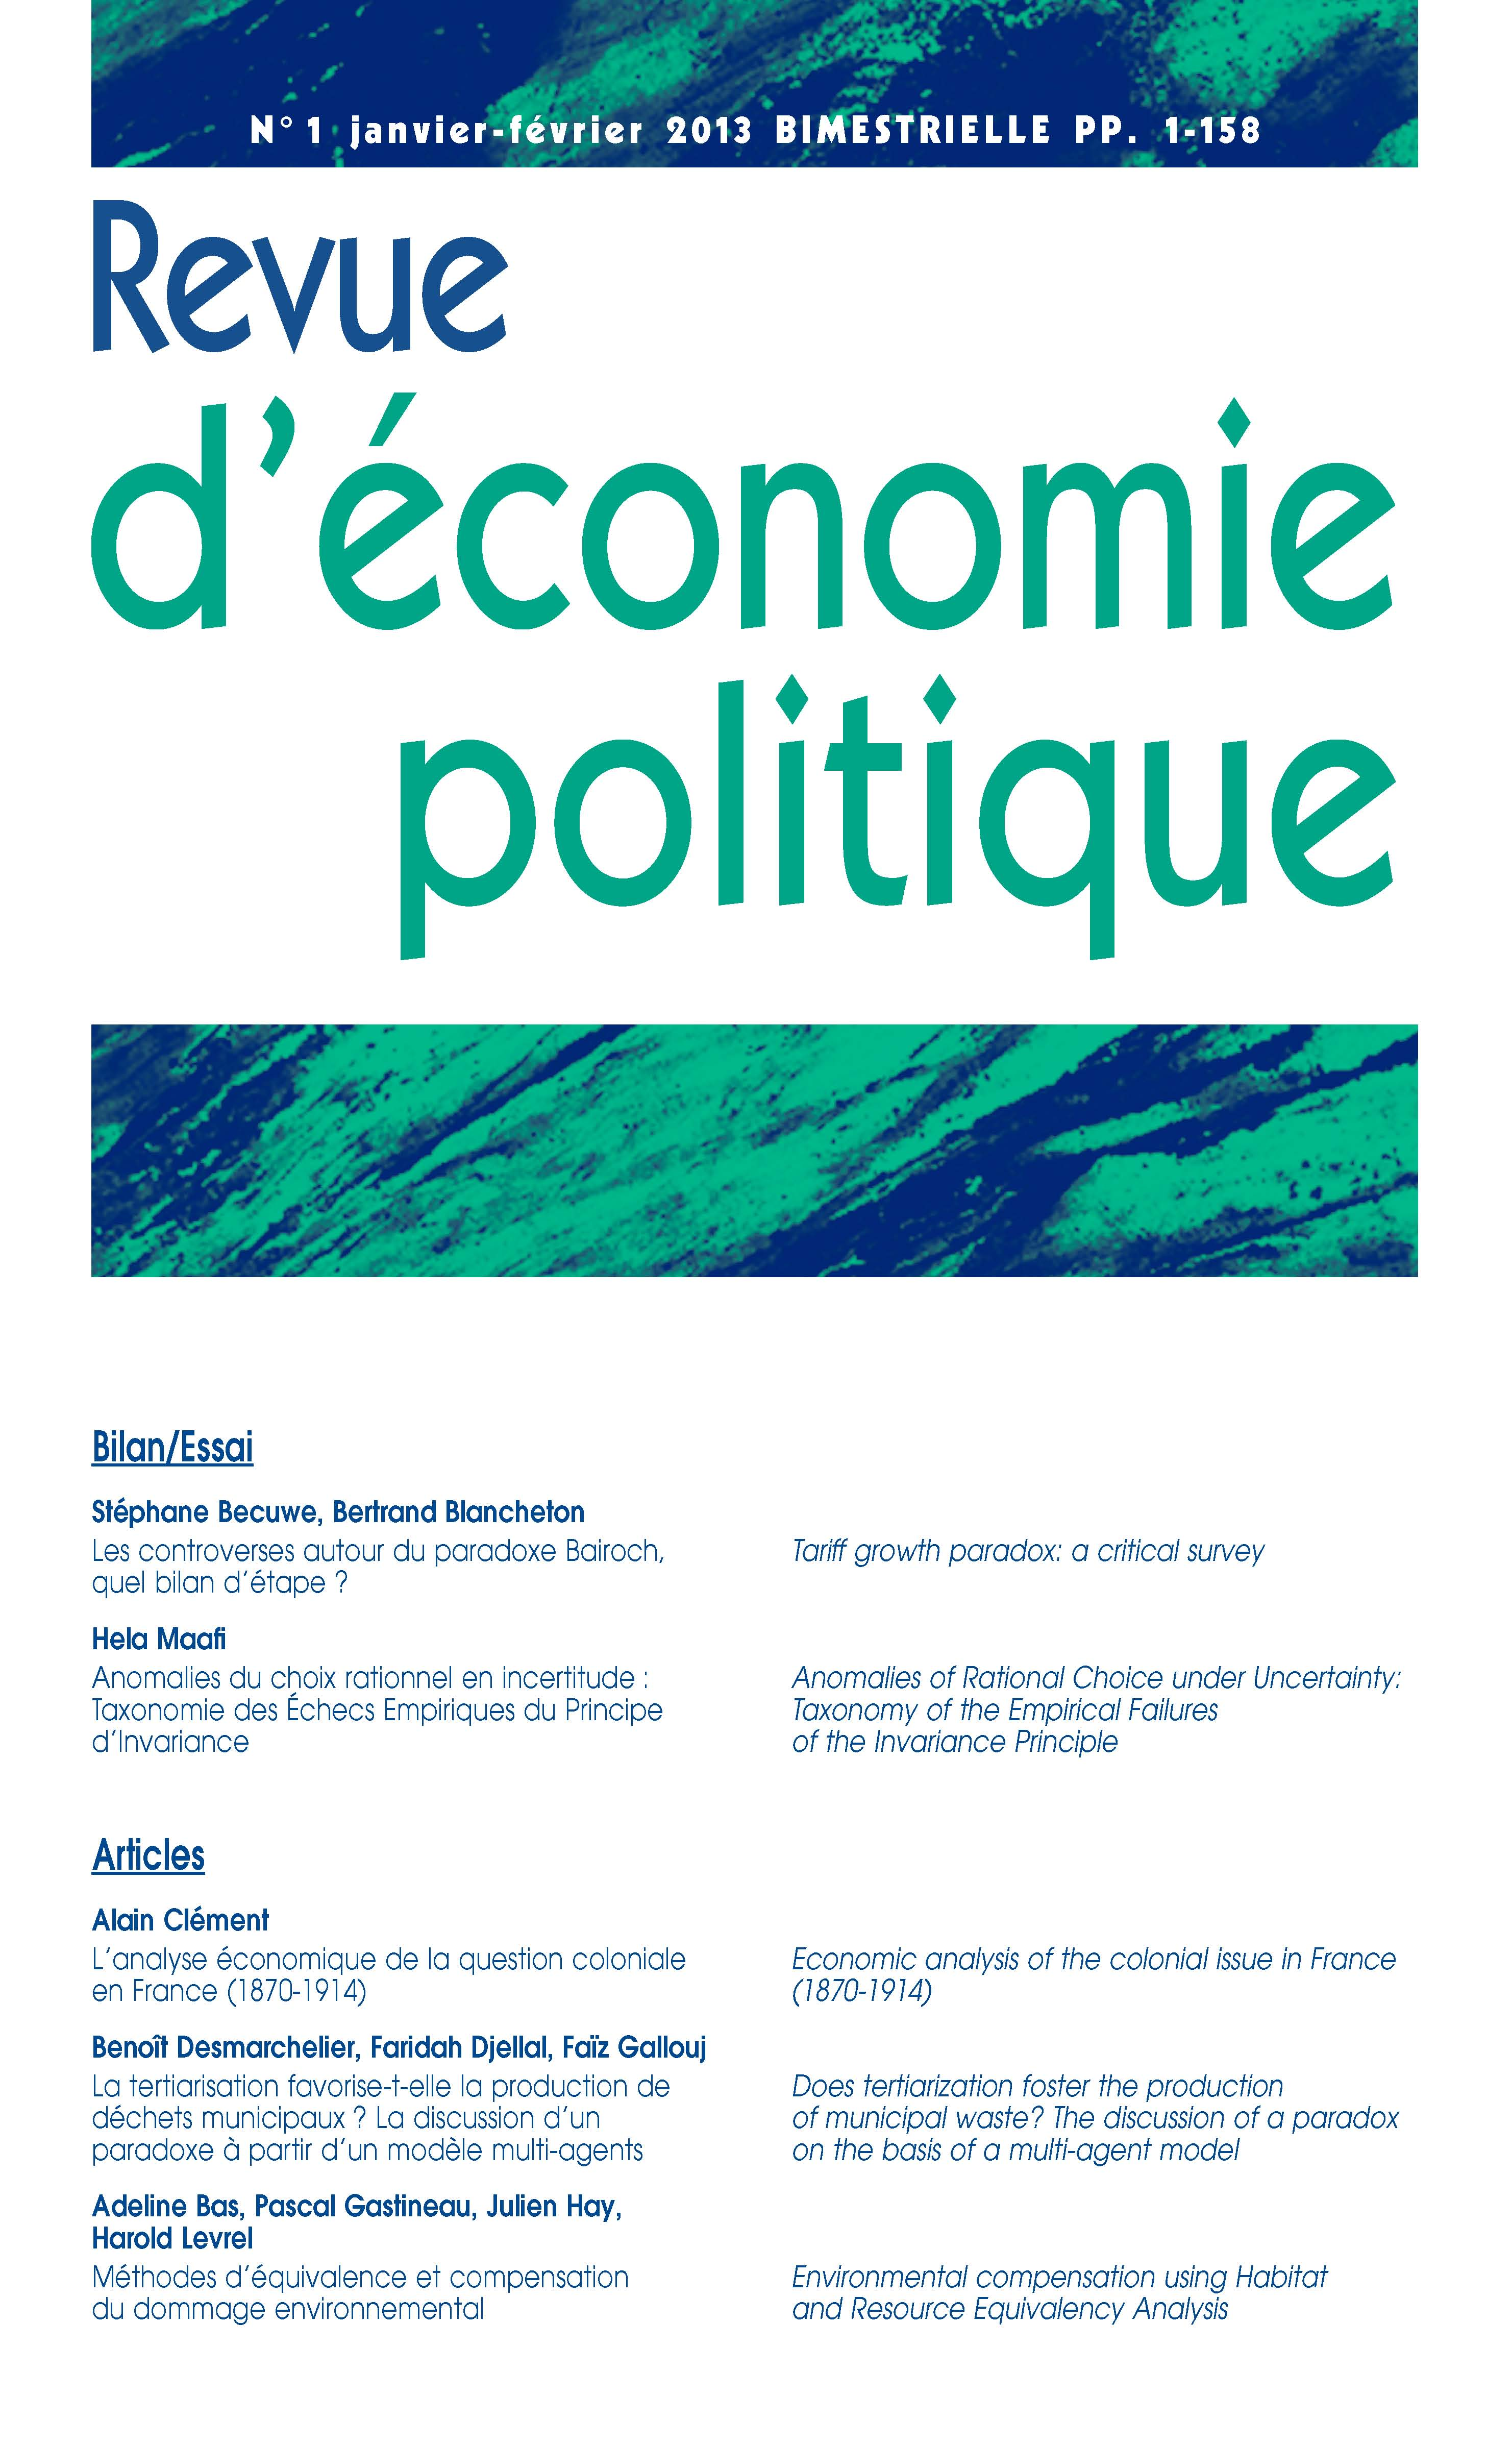 Libres contributions économiques, Tome III (French Edition)